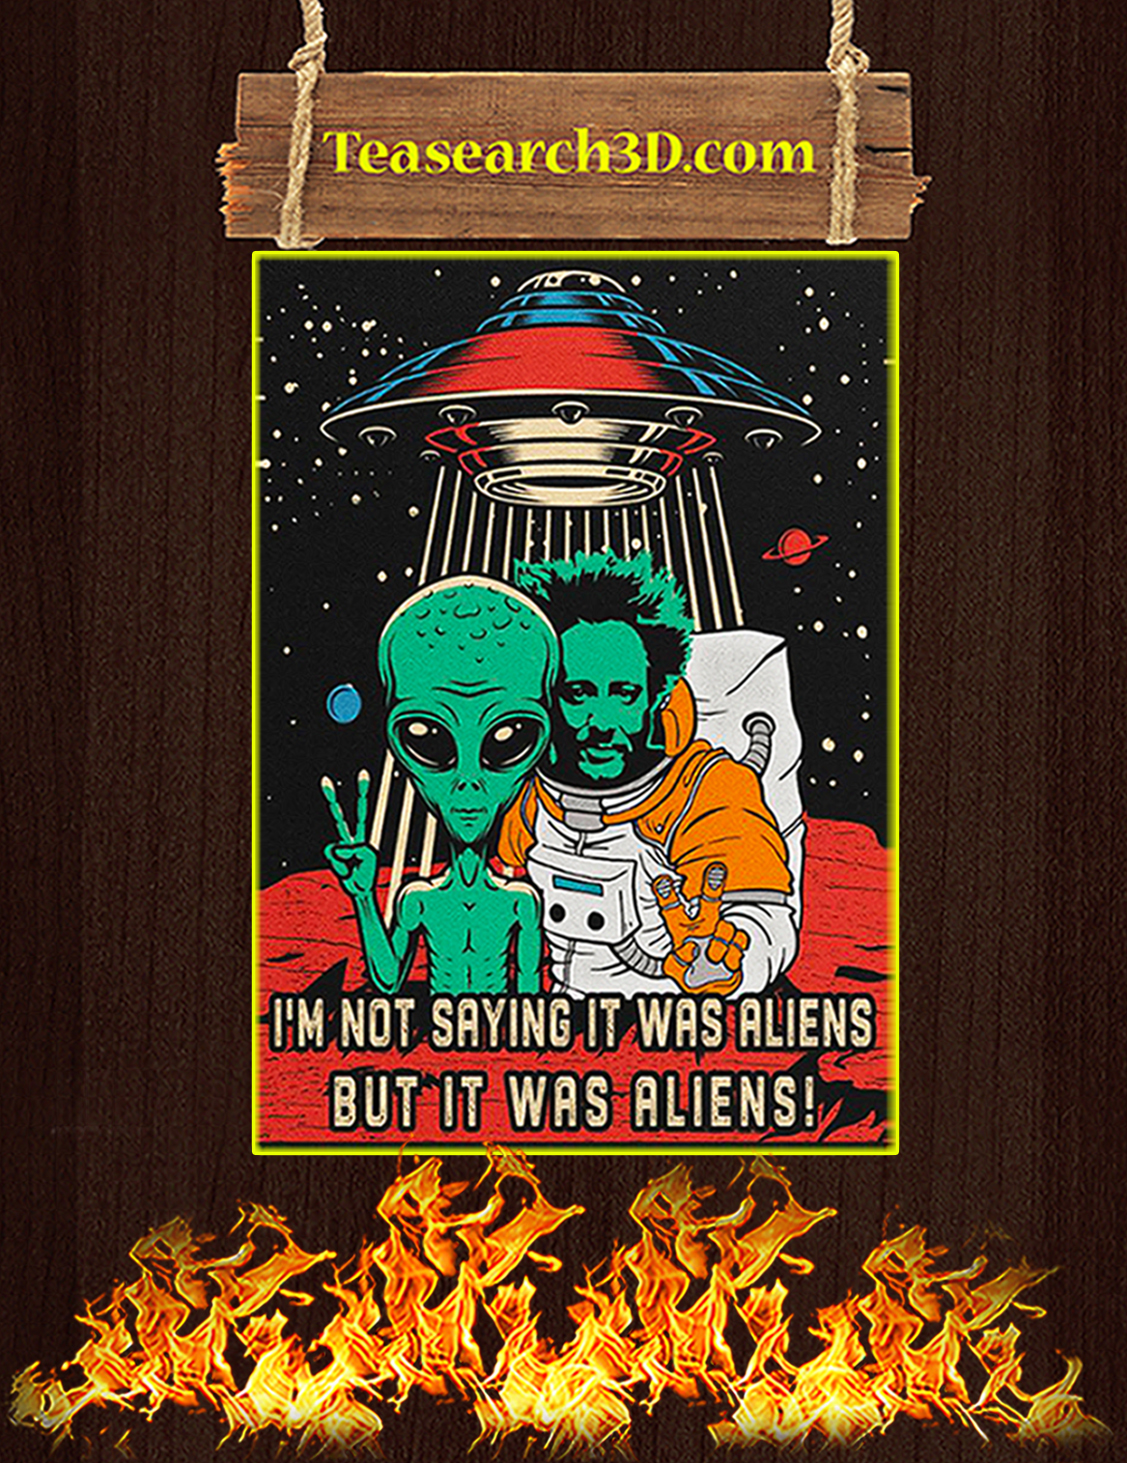 I'm not saying it was aliens but it was aliens canvas prints large